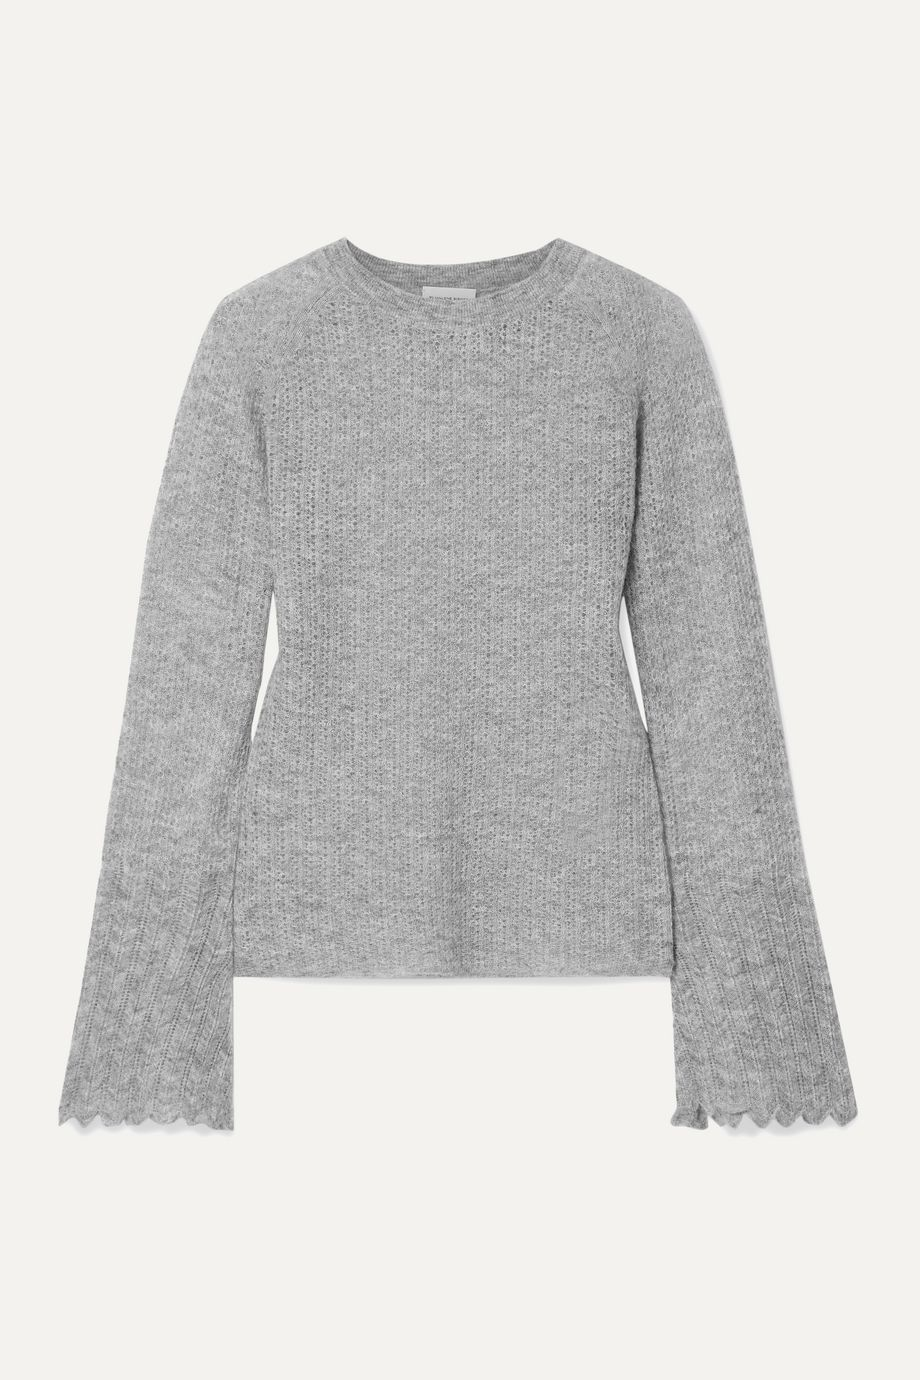 By Malene Birger Open-knit sweater